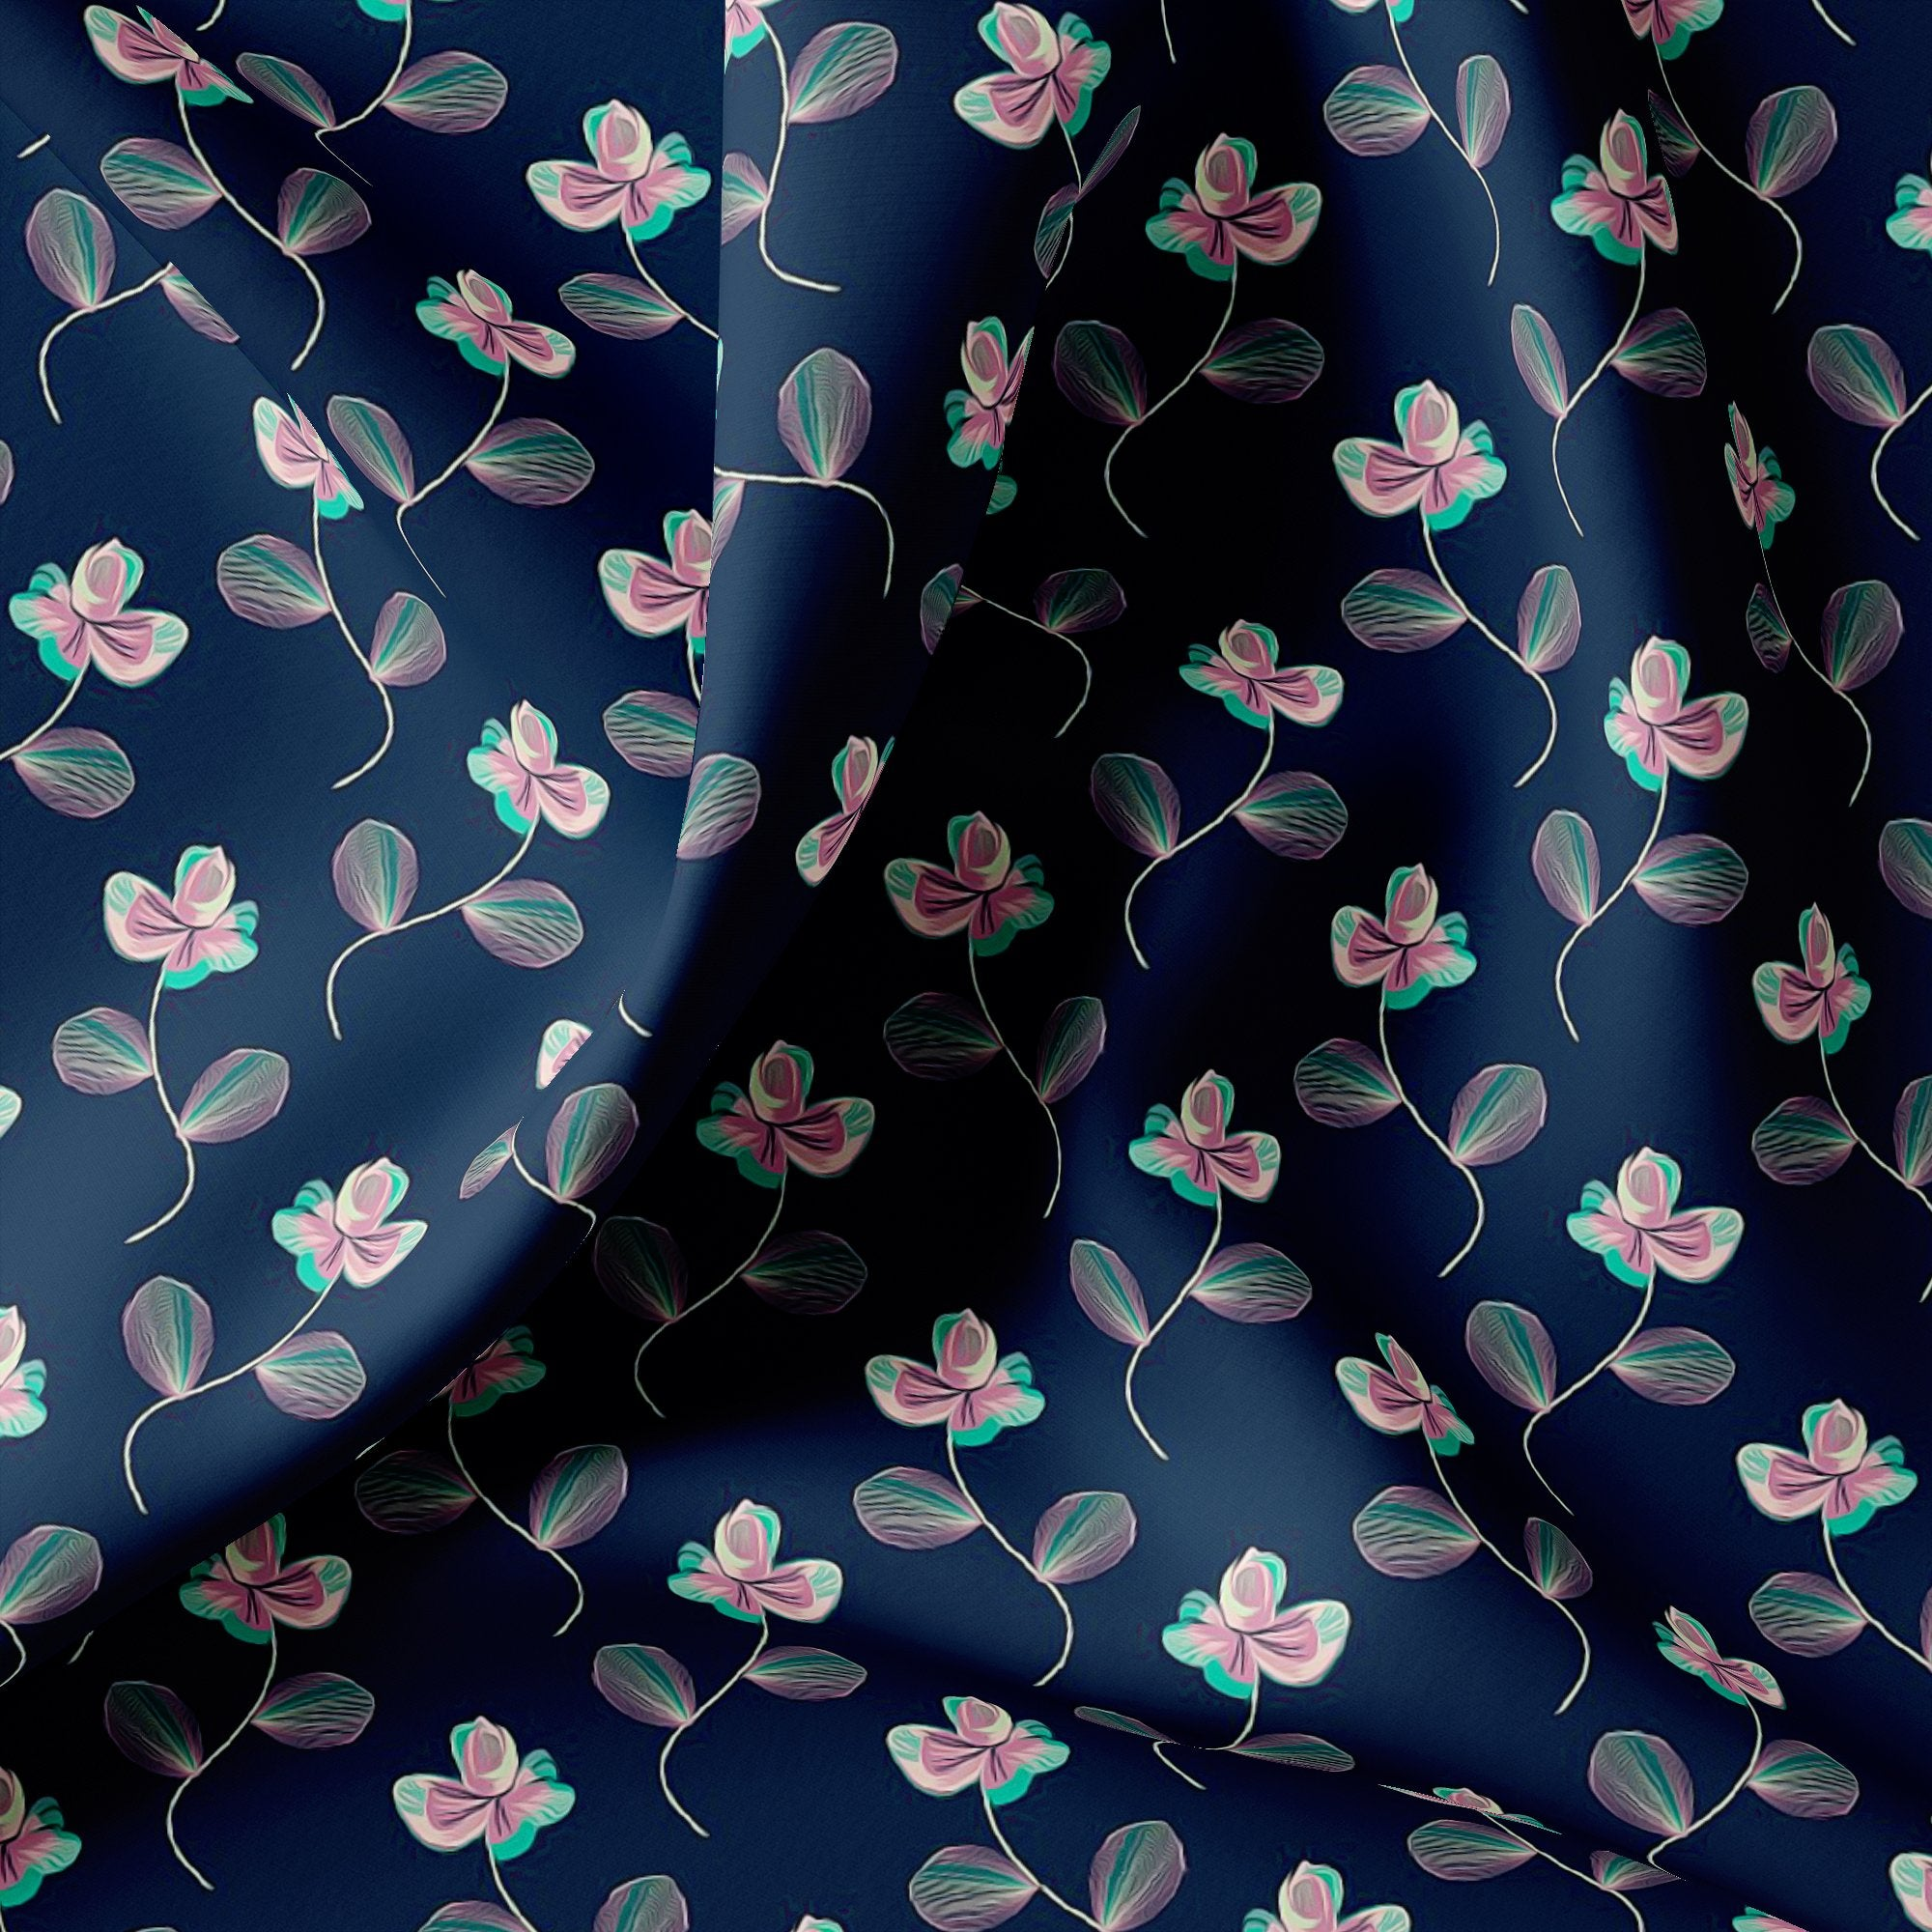 Flowers Floating over Blue Base Digital Printed Fabric - Wholesale FAB VOGUE